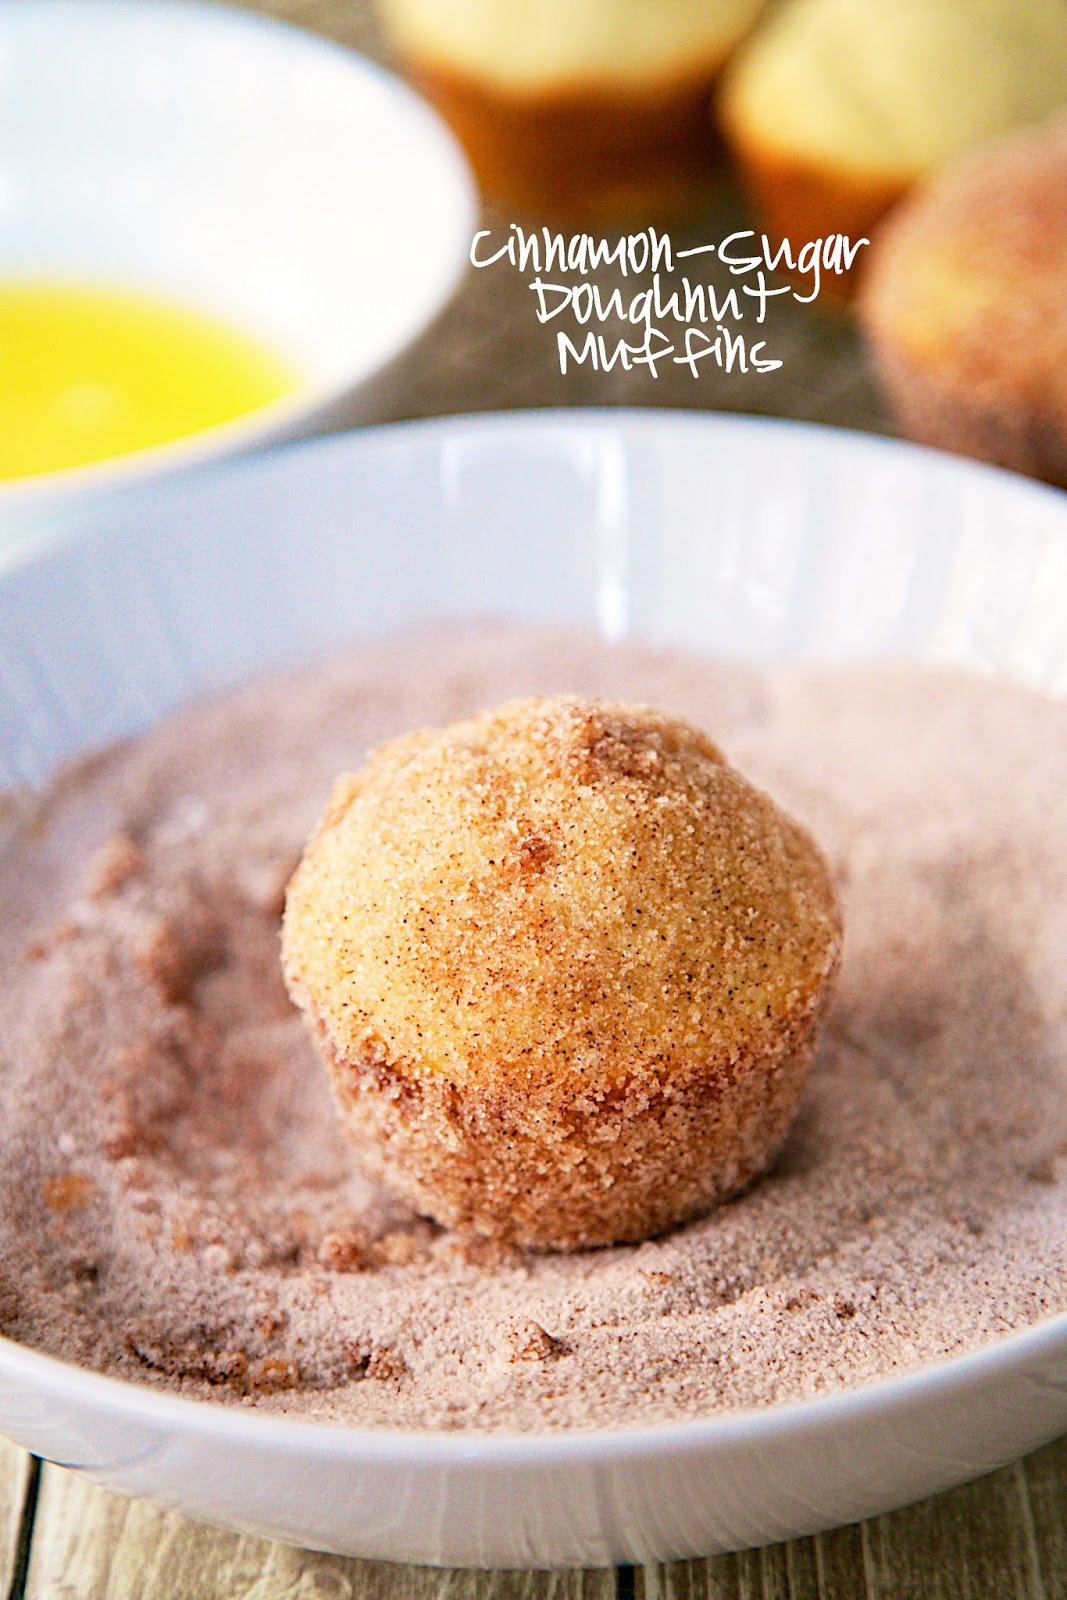 Cinnamon-Sugar Doughnut Muffins Recipe - baked doughnut muffins coated in cinnamon and sugar - tastes just like an old-fashioned doughnut! Great for Mother's Day breakfast!